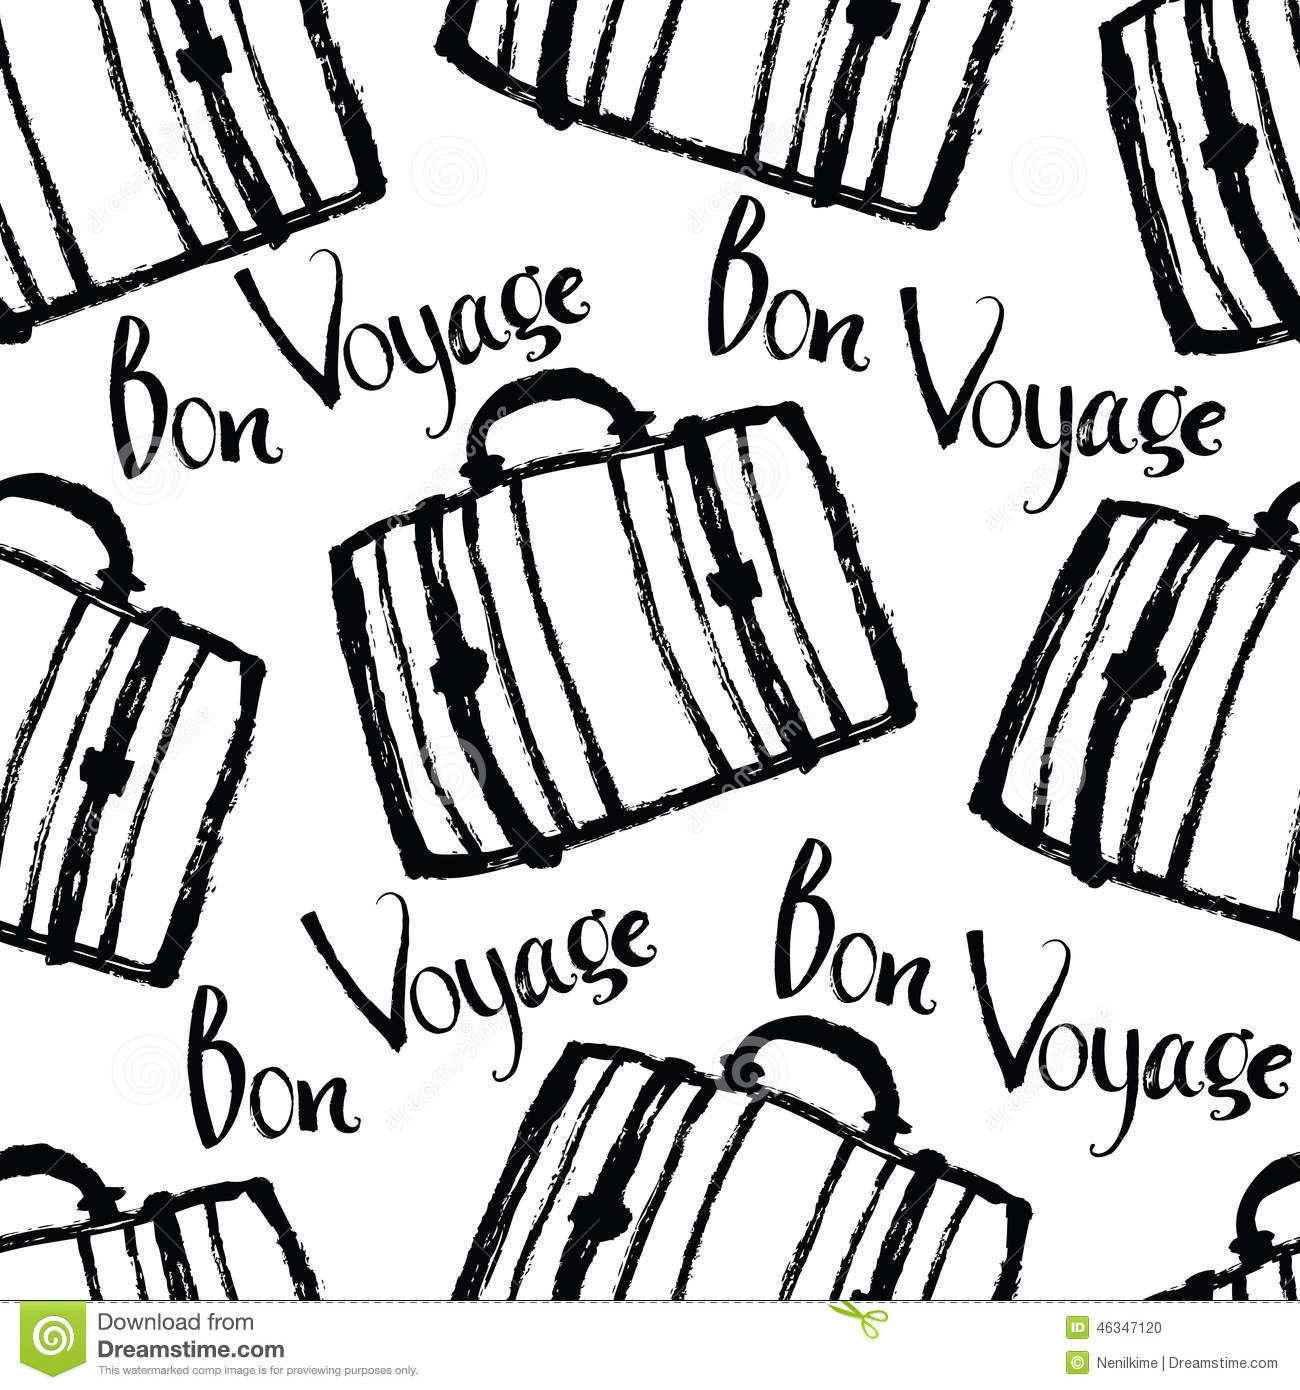 Bon Voyage Background With Suitcases Stock Vector - Image: 46347120